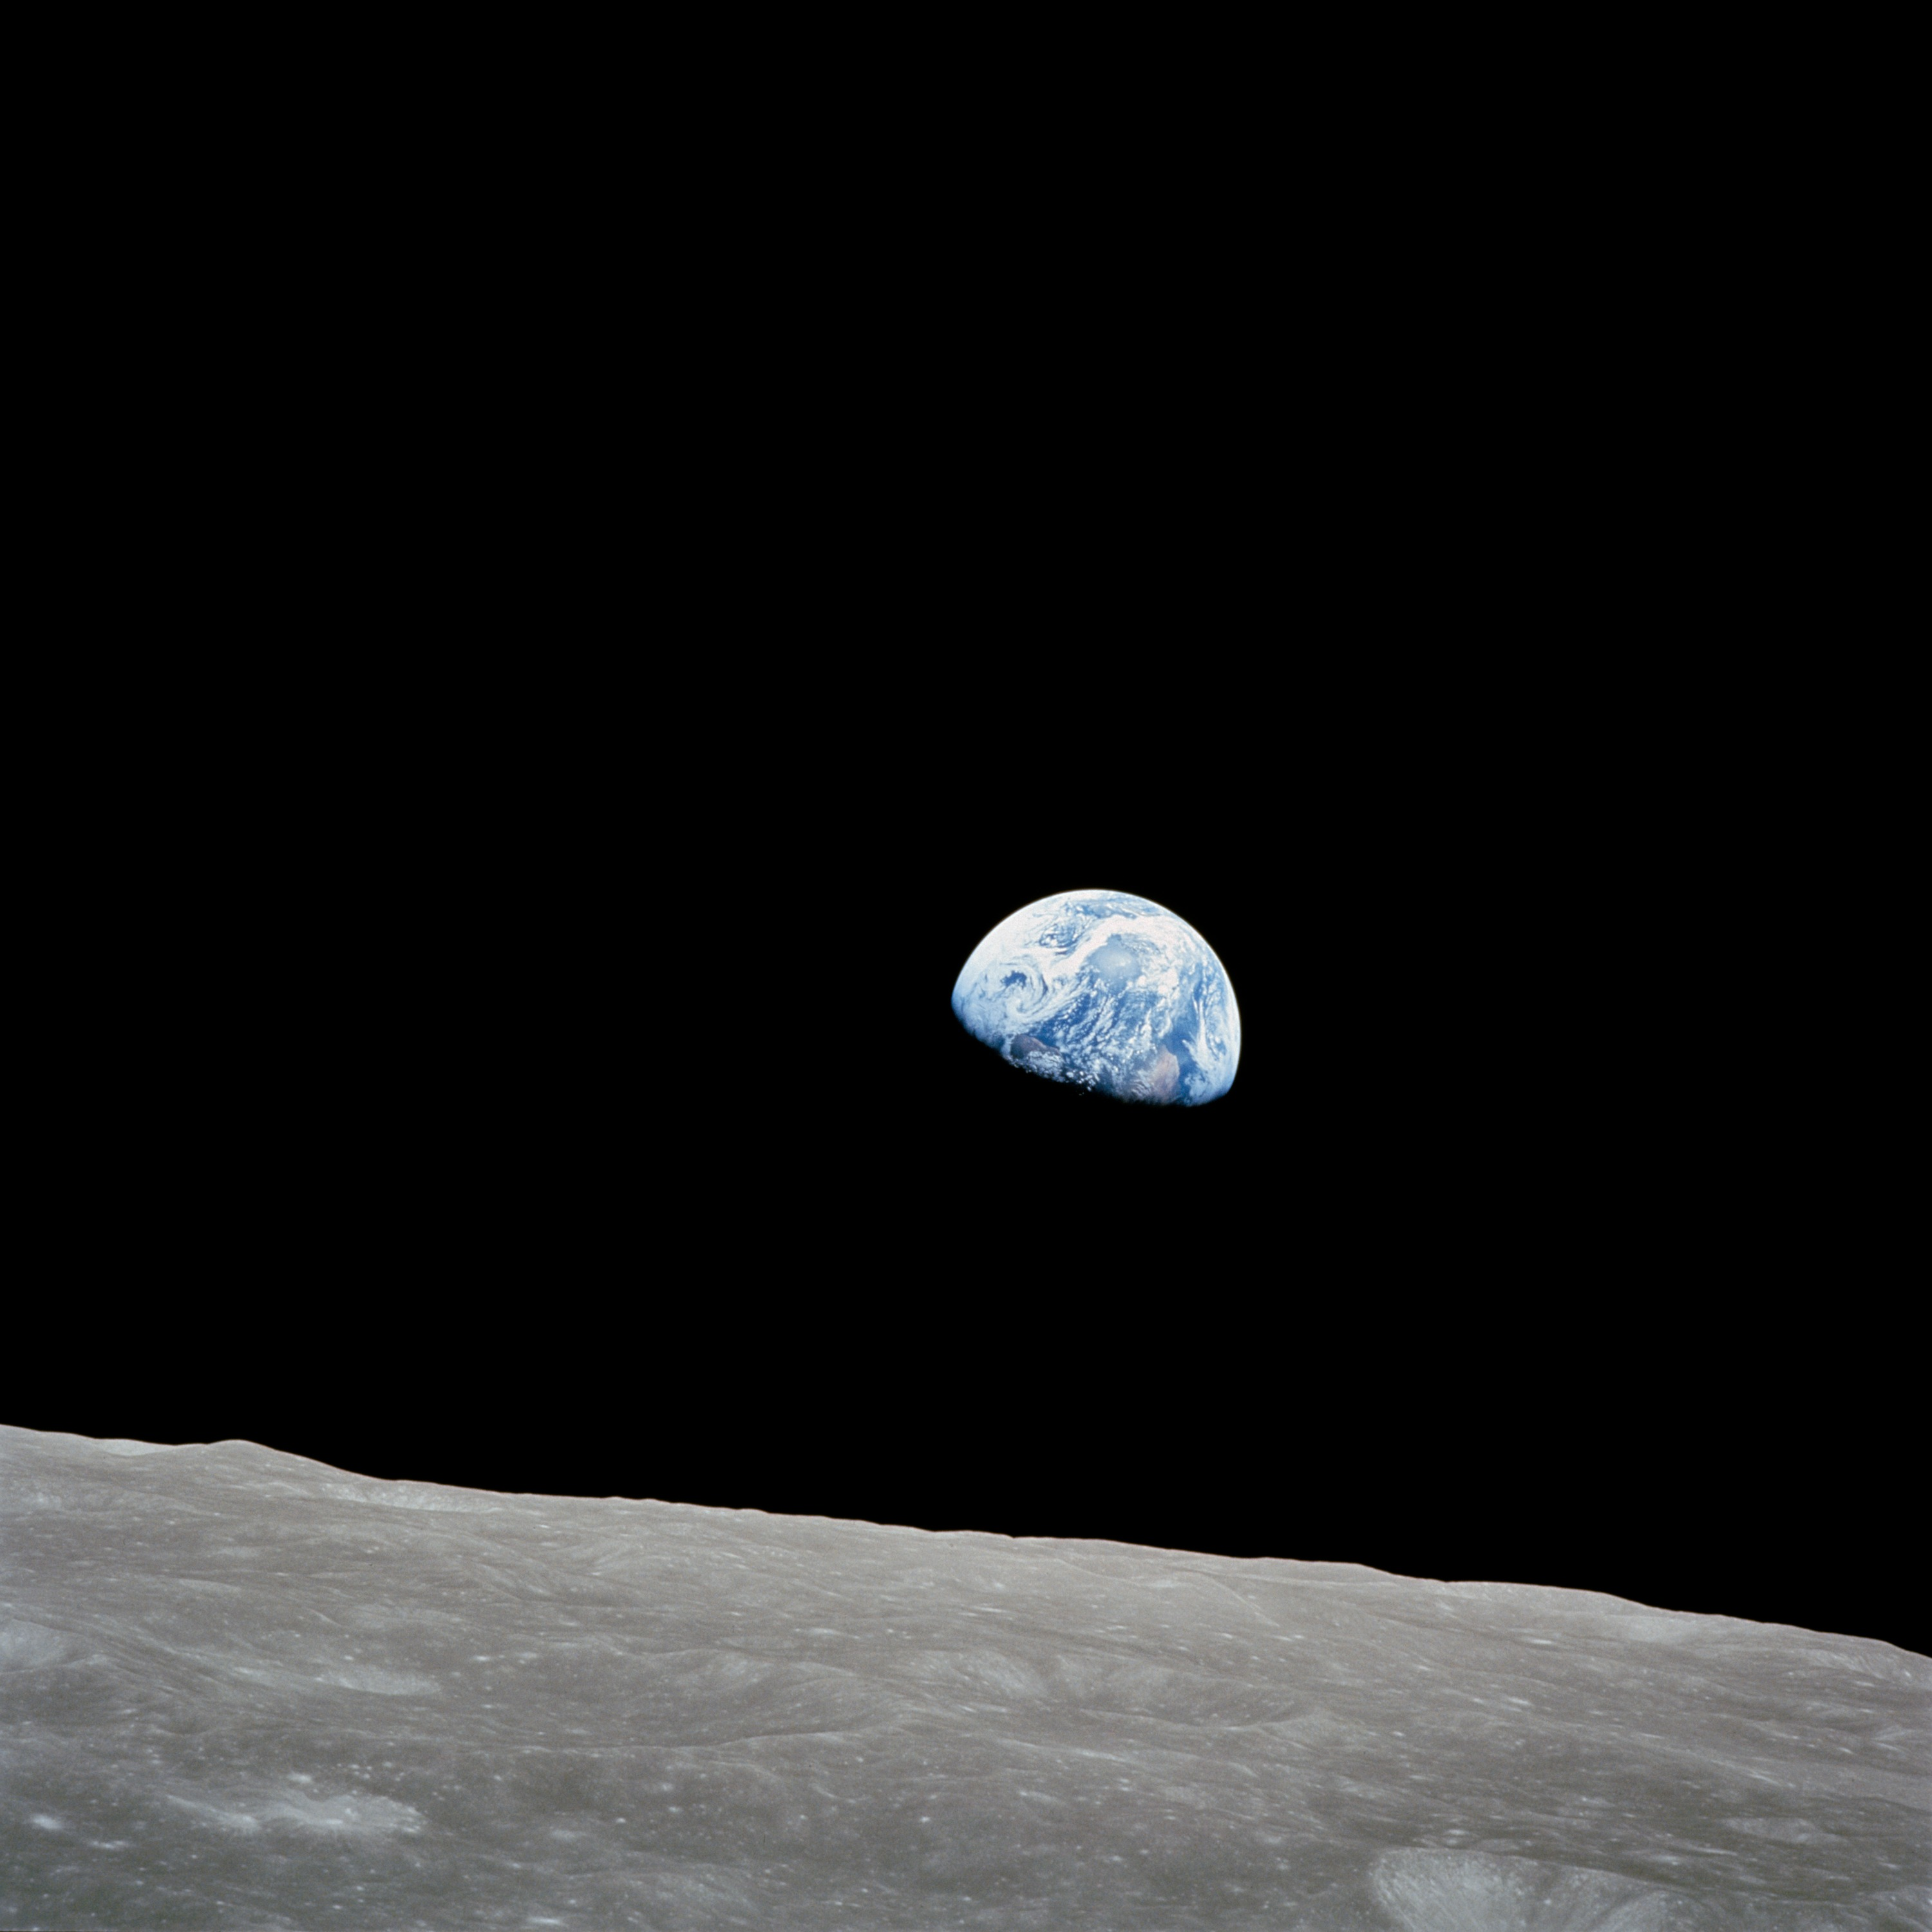 blue earth in black space above gray lunar surface